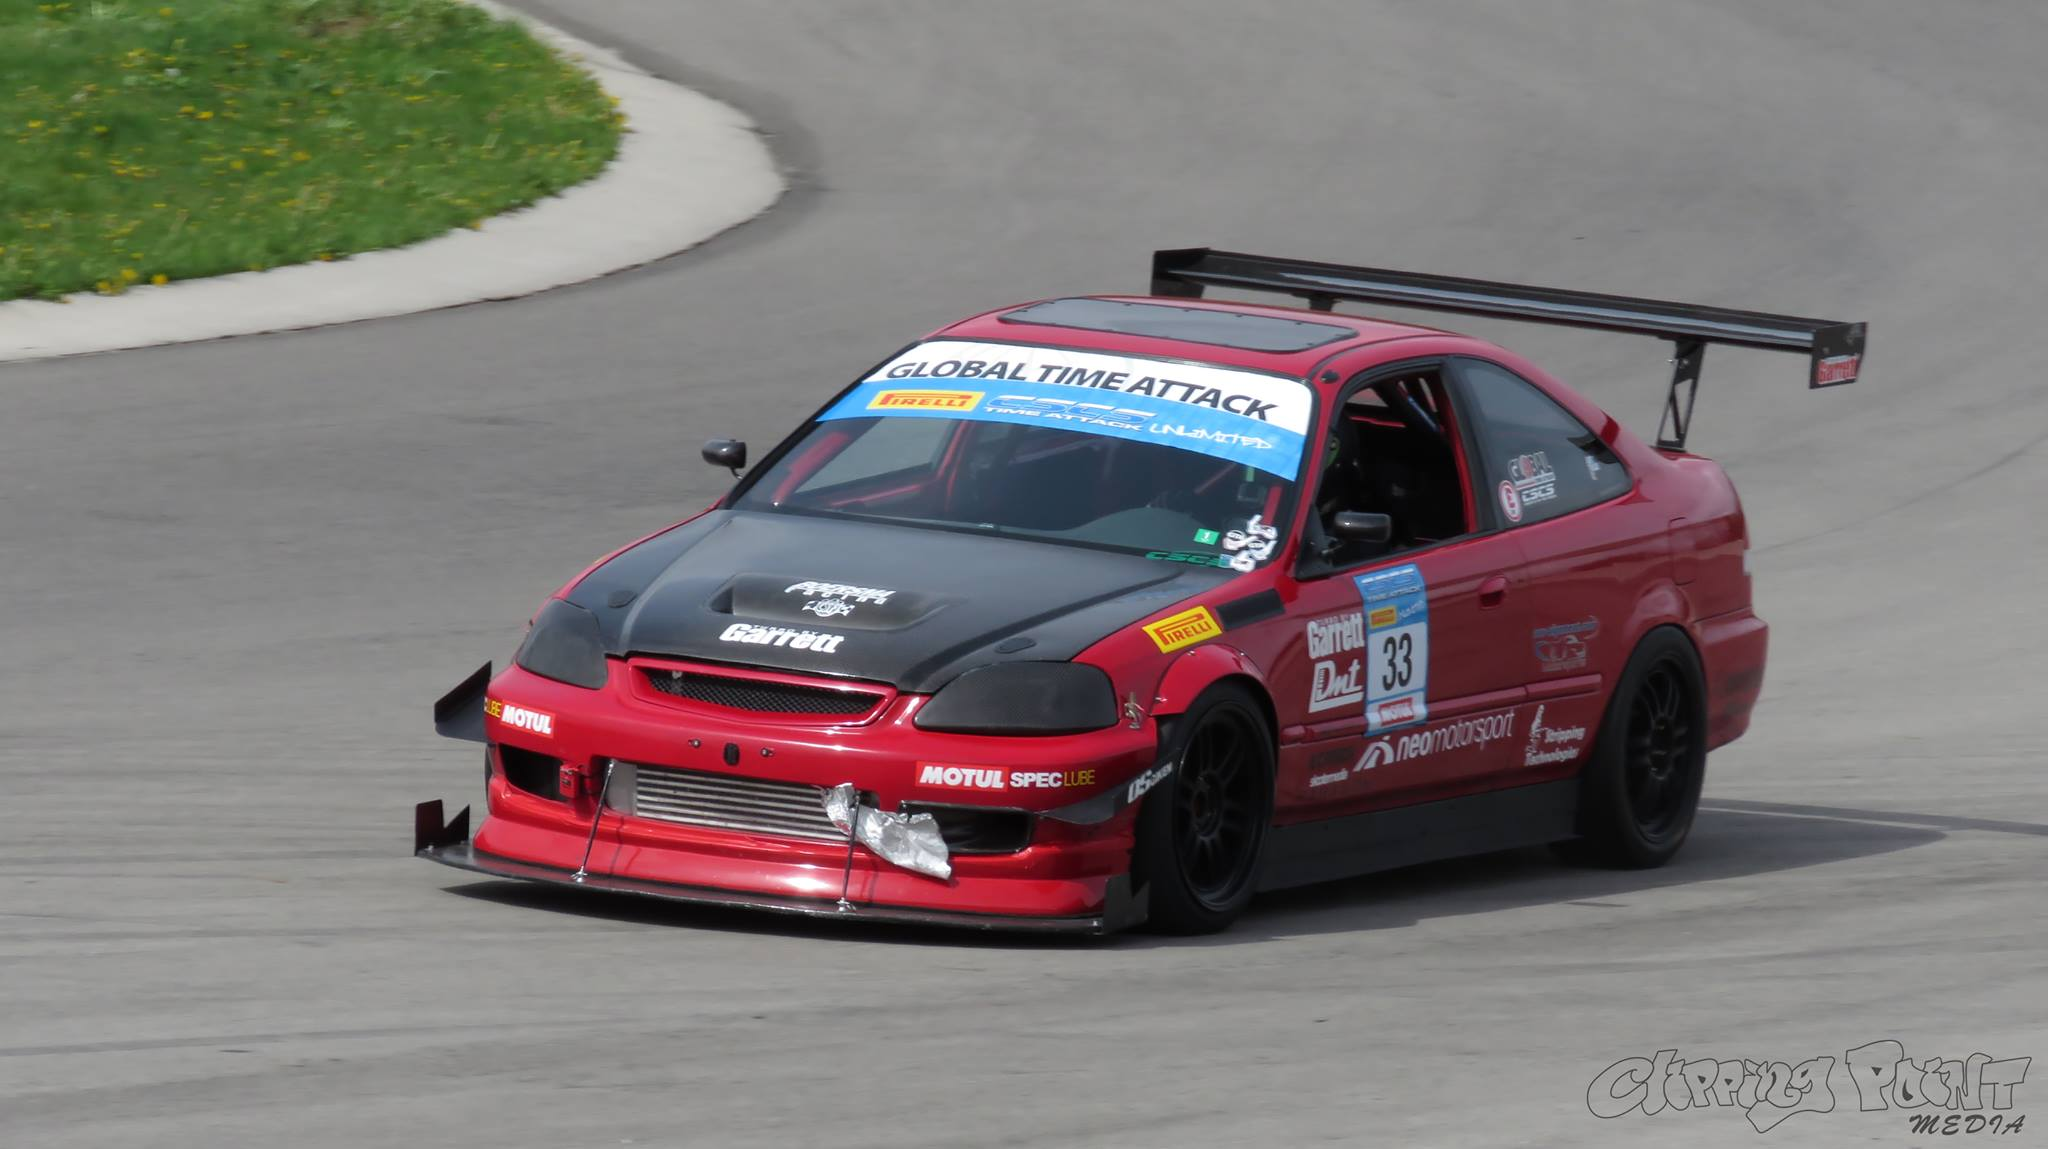 Boersma Racing  will be joining us from Canada this season. Last season they were Globaltime Attack Street class champions. You have to love turbo B series.